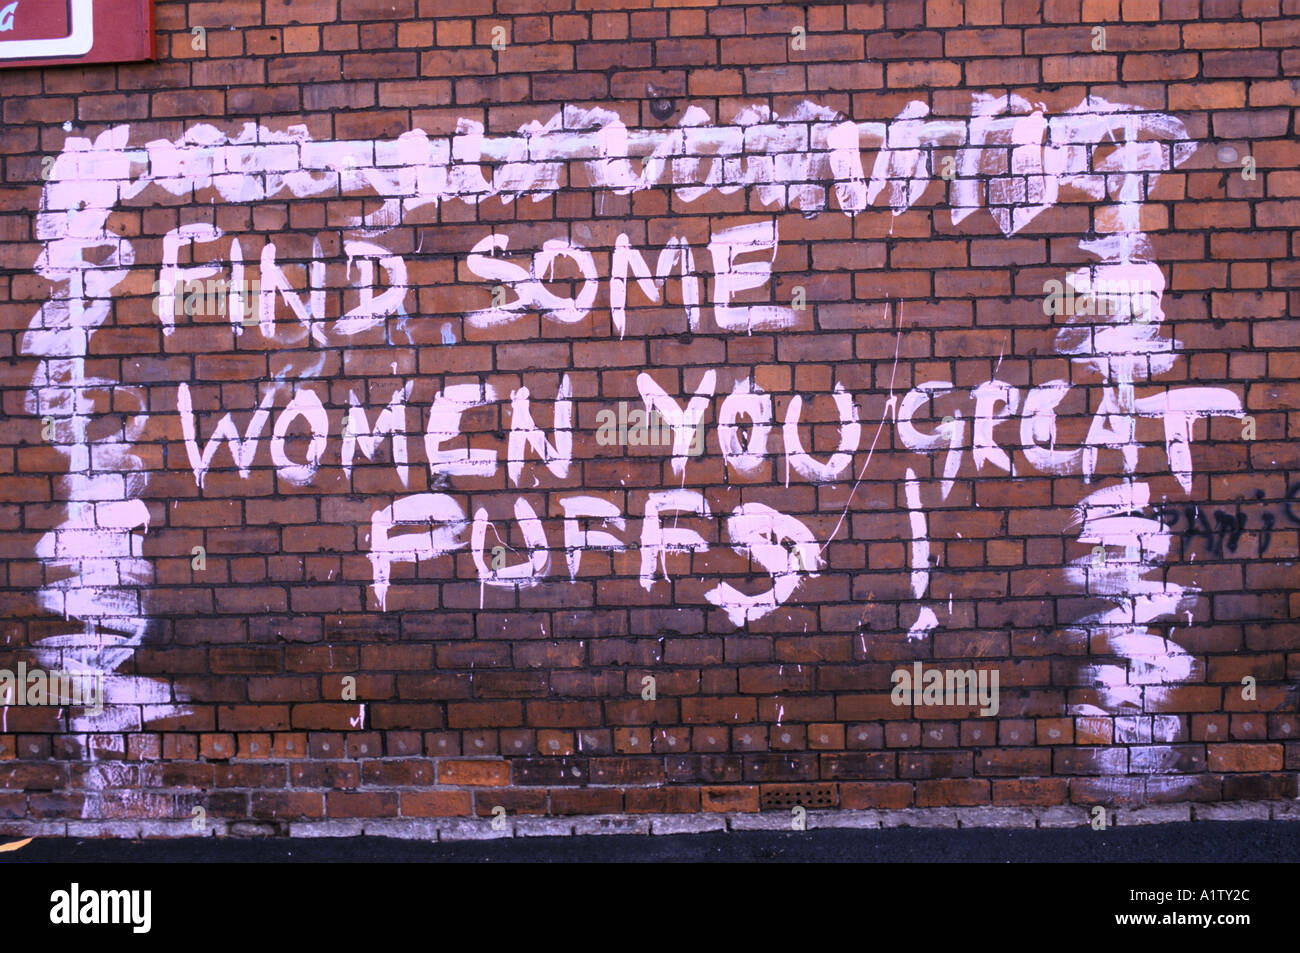 HOMOPHOBIC GRAFFITI ON BRICK WALL FIND SOME WOMEN YOU GREAT PUFFS HULL 1996 - Stock Image